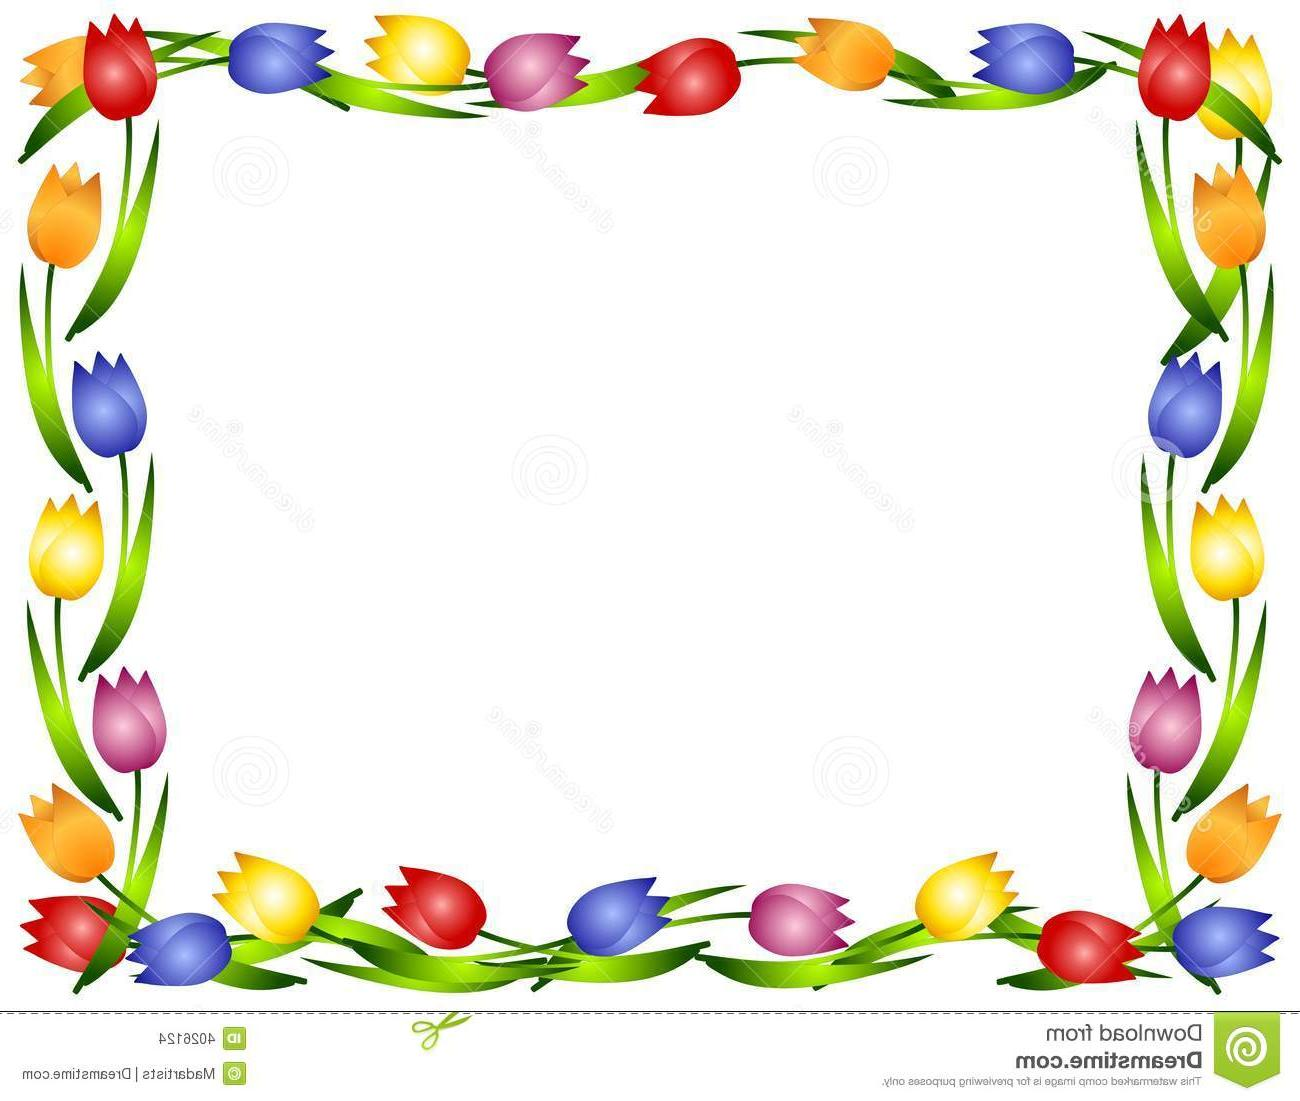 Tulip Clipart Border | Free download on ClipArtMag